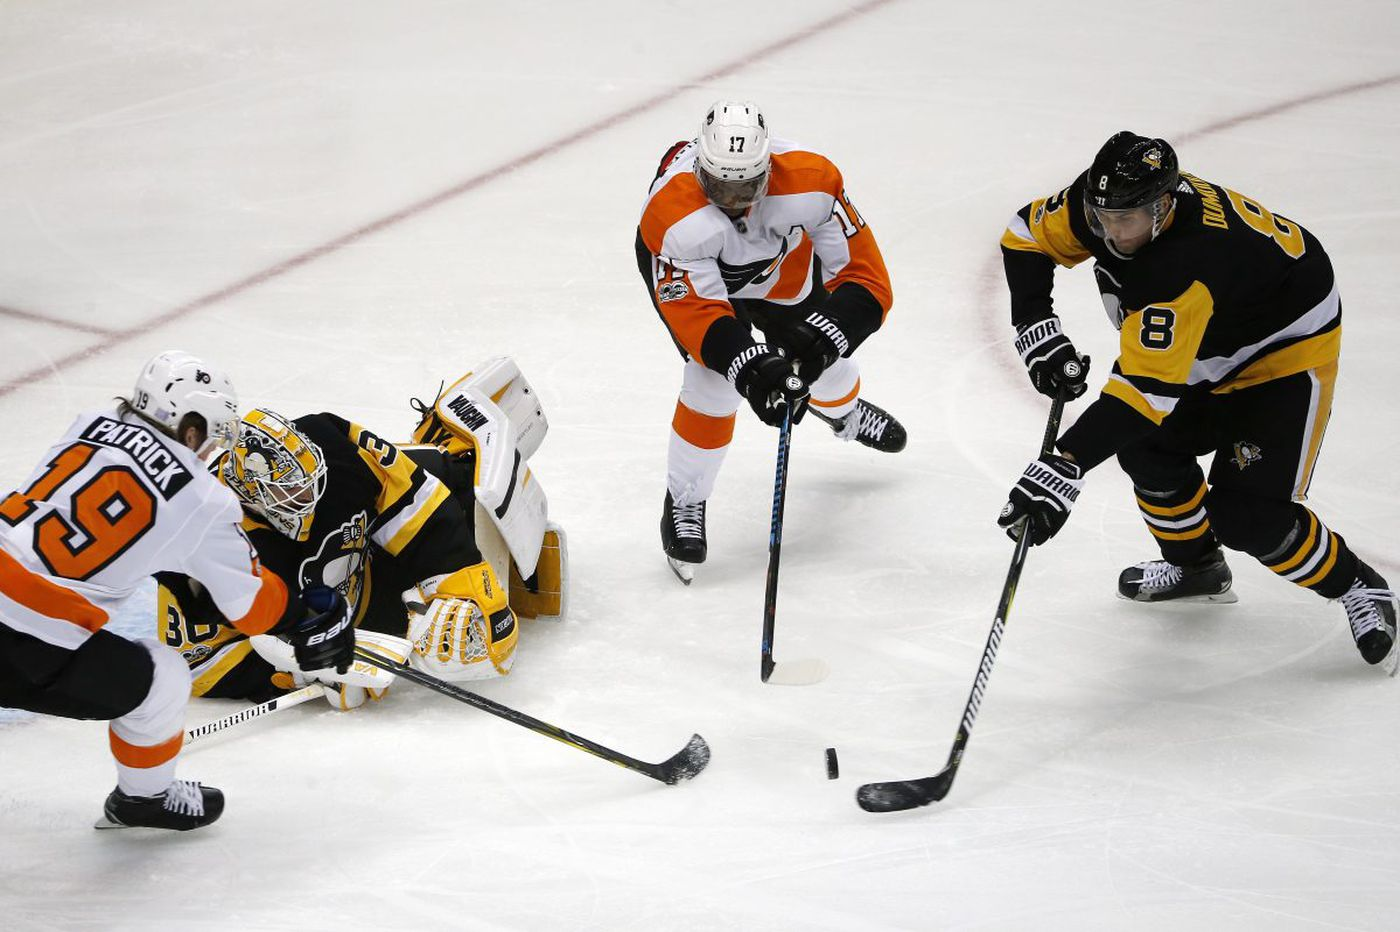 Quick takes on another gut-punch OT loss for Flyers